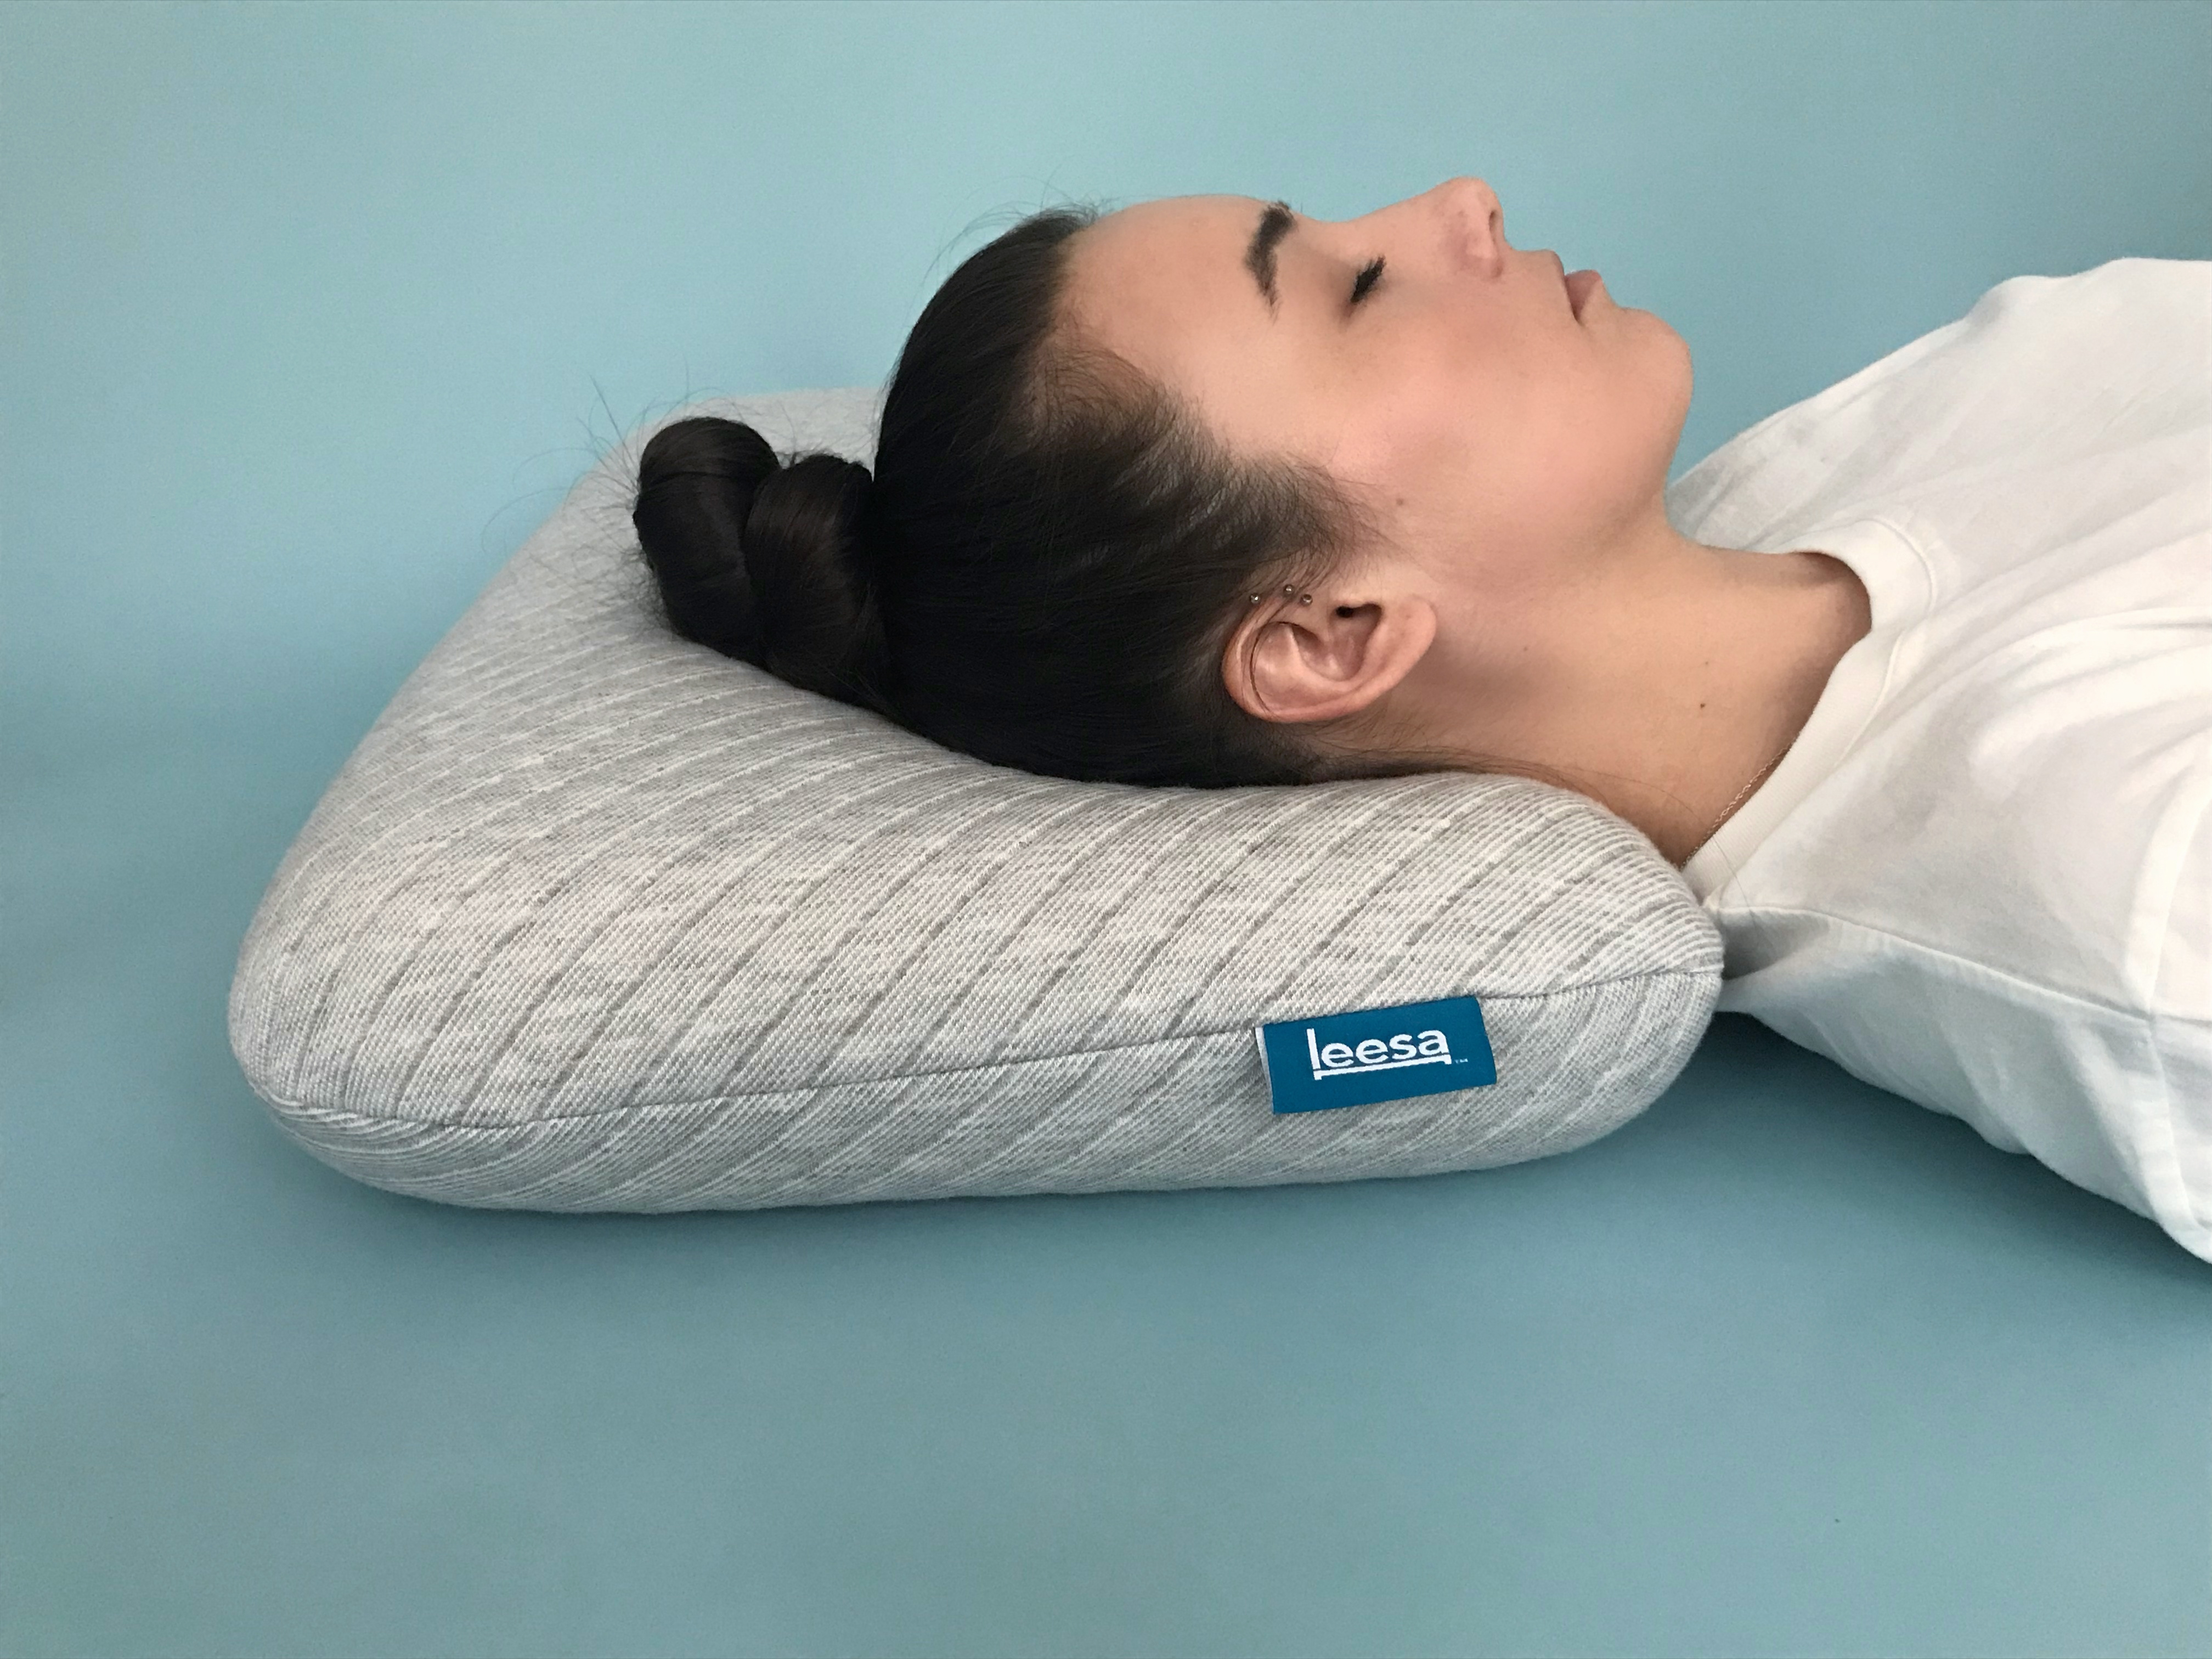 position classic side back sleep pillow classicsoft pillows blog sleepers soft sleeper for stomach prod and best guide image np